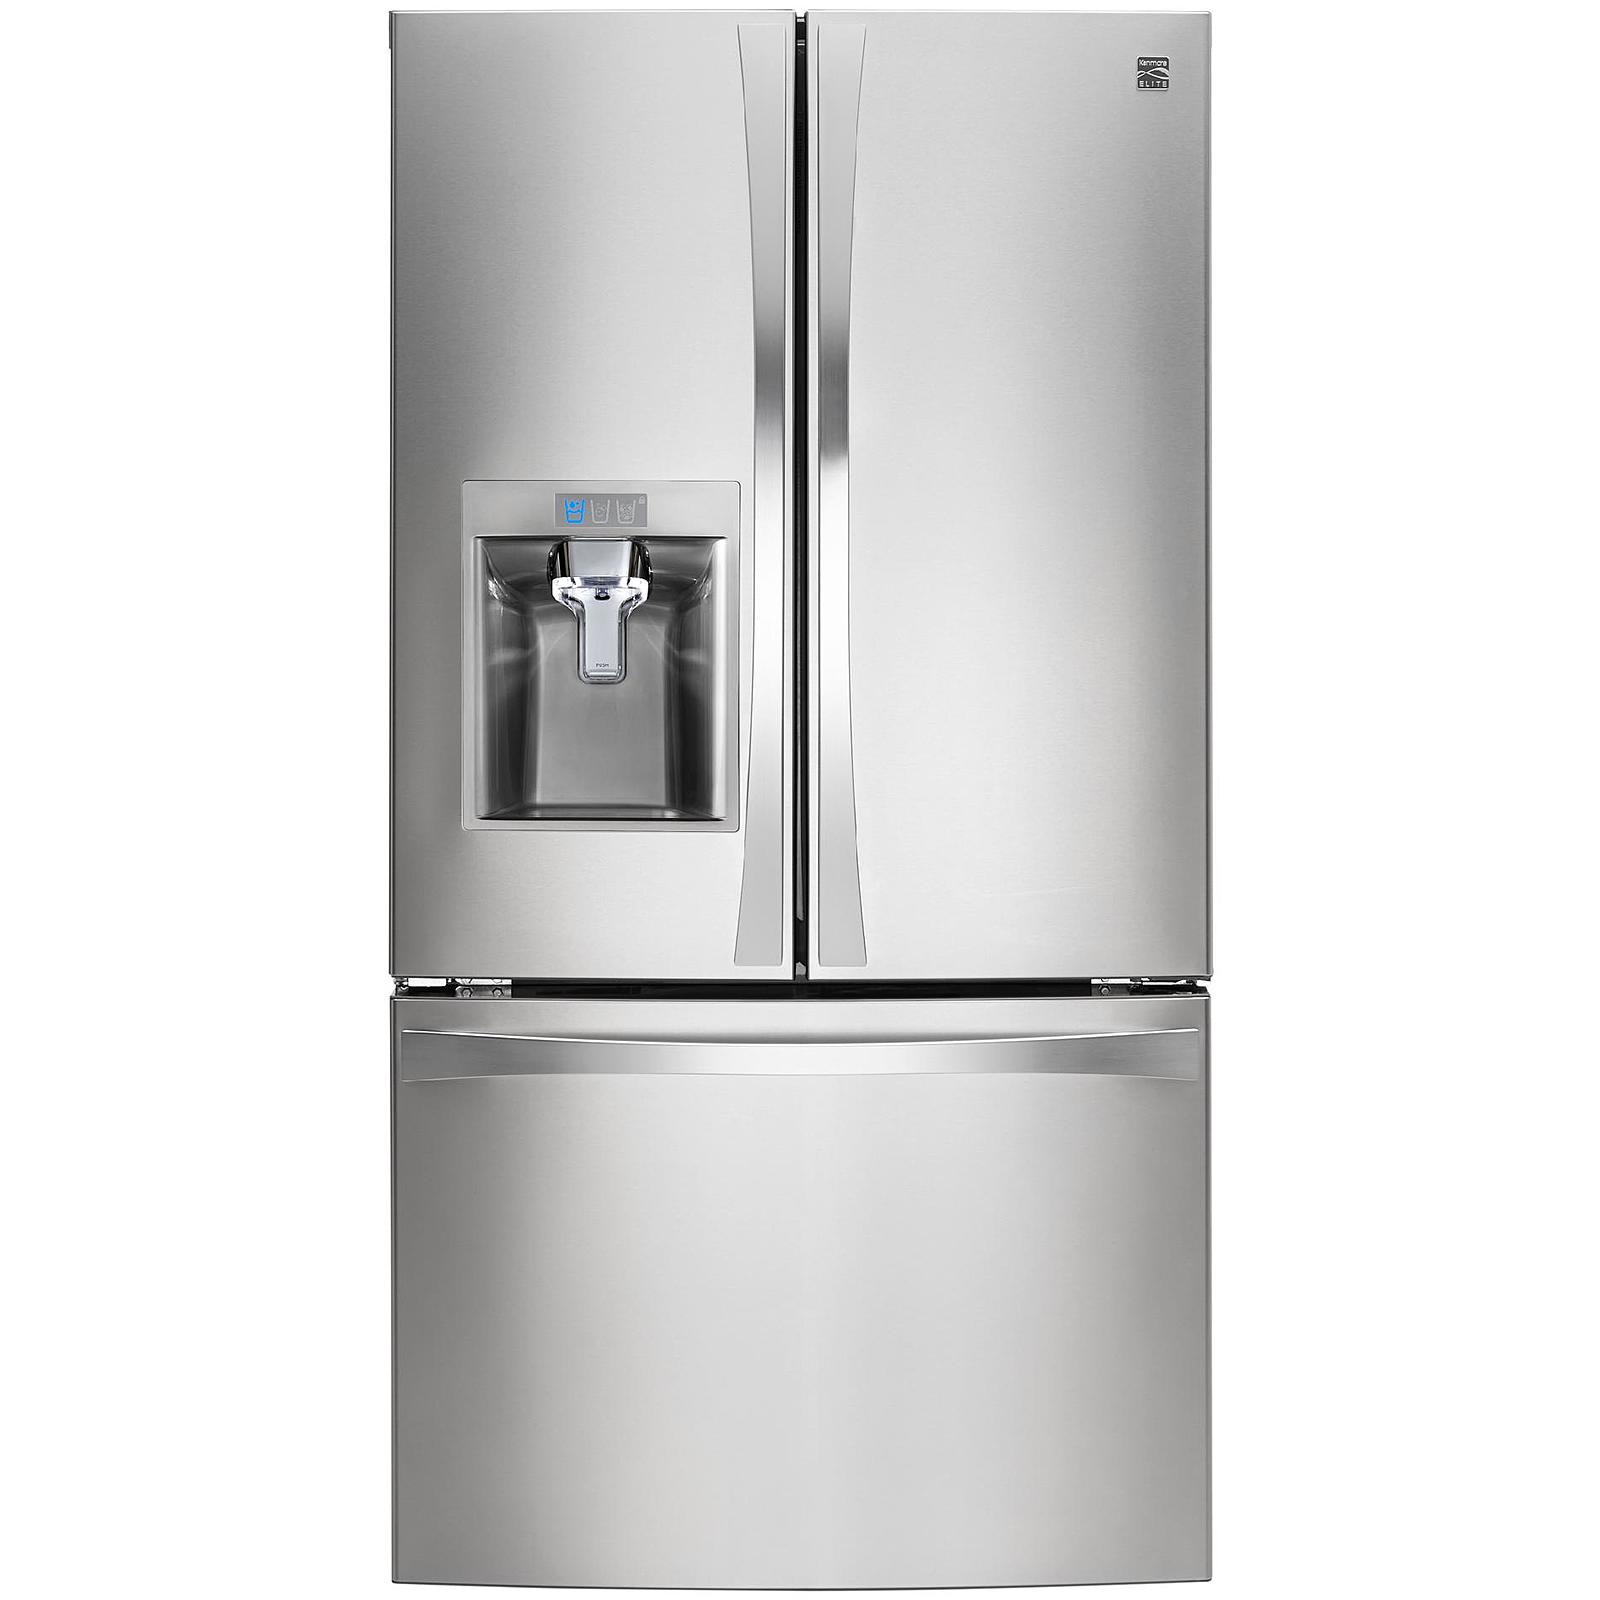 74023-29-8-cu-ft-French-Door-Bottom-Freezer-Refrigerator%E2%80%94Stainless-Steel